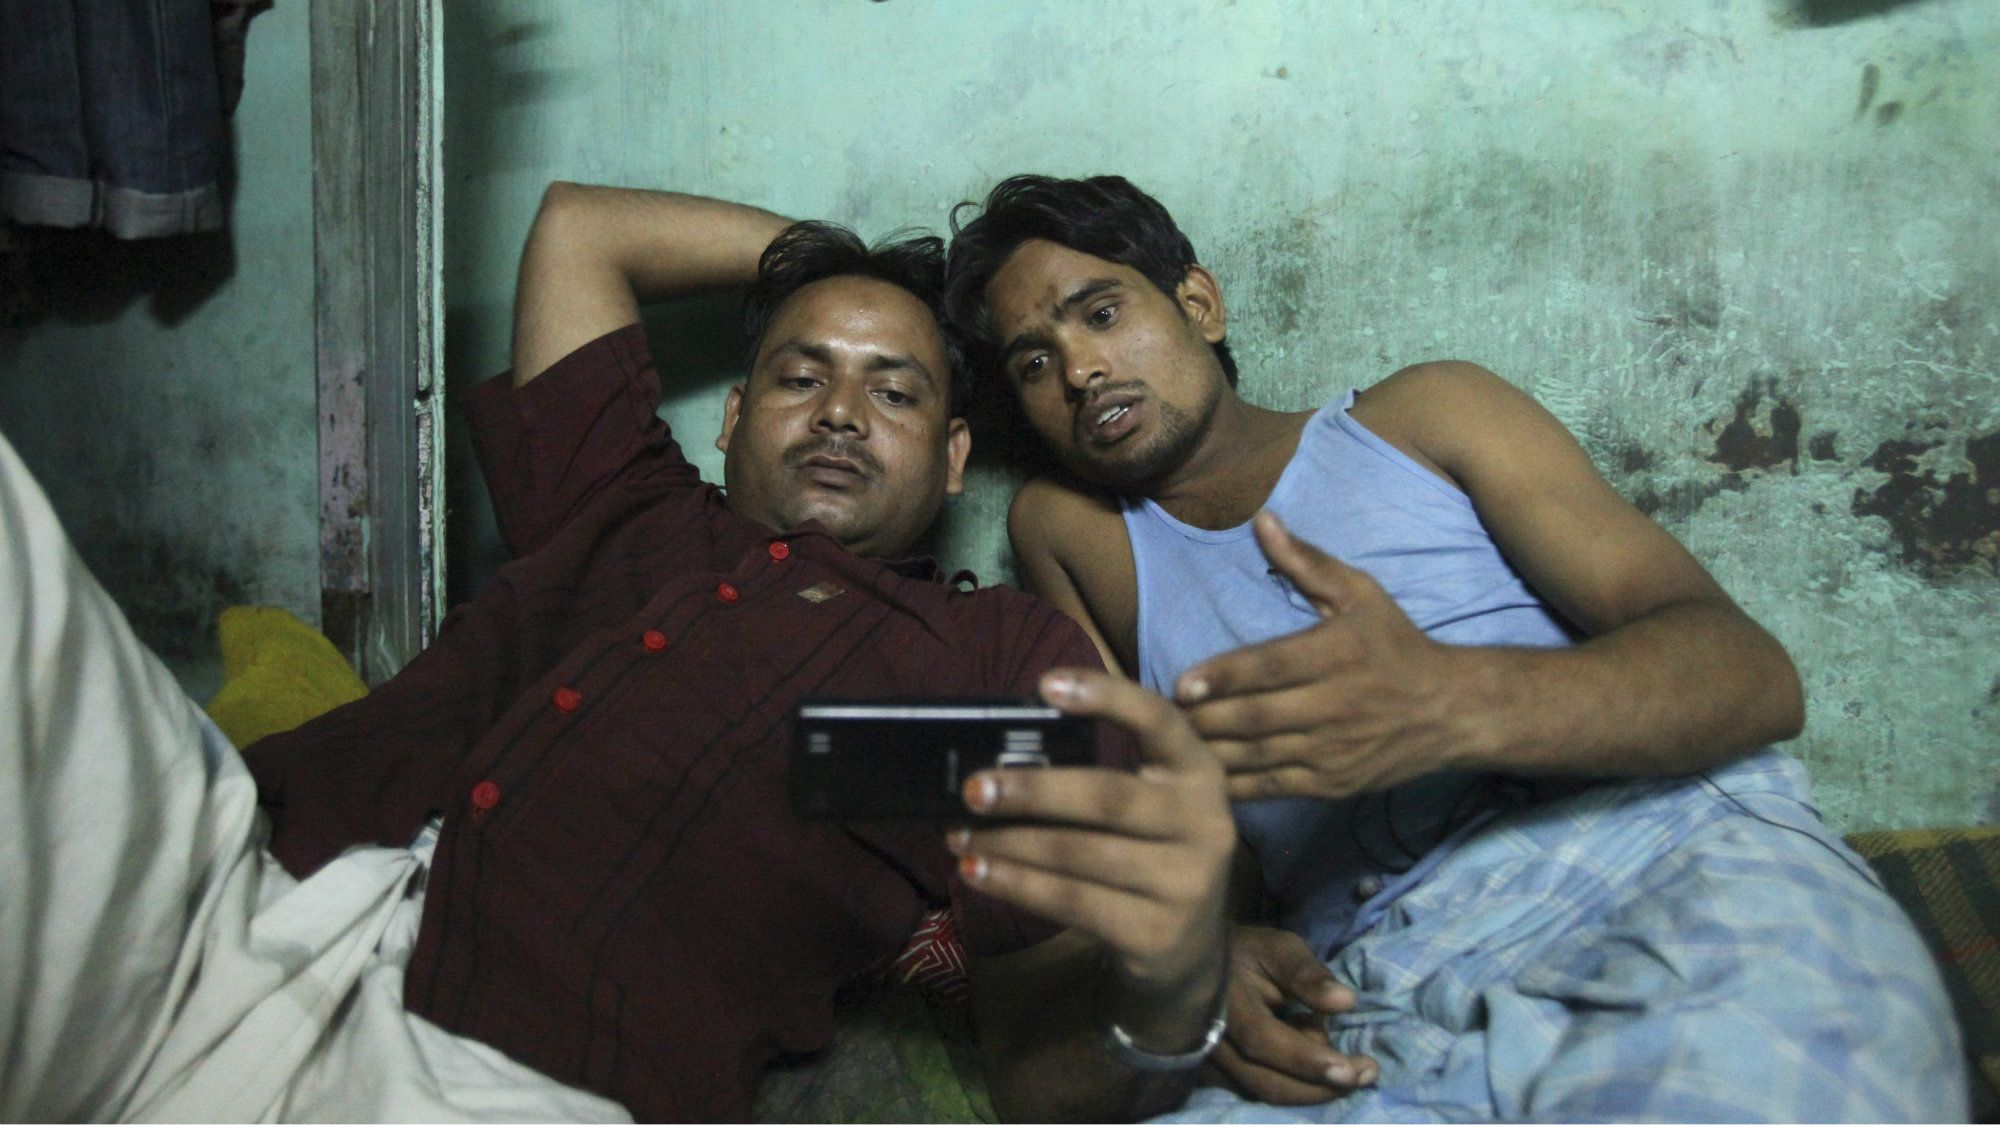 Migrant workers watch movie on a mobile phone in their one room dwelling in a residential area in Mumbai October 3, 2011. Ten migrant workers who pay a monthly rent of 6,000 rupees ($123) live in a 4.5 x 3 metres (15 x 10 ft.) room. All the occupants who come from the same district of the northern Indian state of Uttar Pradesh are in Mumbai for better job opportunities and work as taxi drivers and manual labourers. According to a 2011 census conducted by the government of India, the population of Mumbai is more than 12 million and there is estimated to be about 20,482 persons per square kilometre. Picture taken October 3, 2011. REUTERS/Danish Siddiqui (INDIA - Tags: SOCIETY BUSINESS EMPLOYMENT)